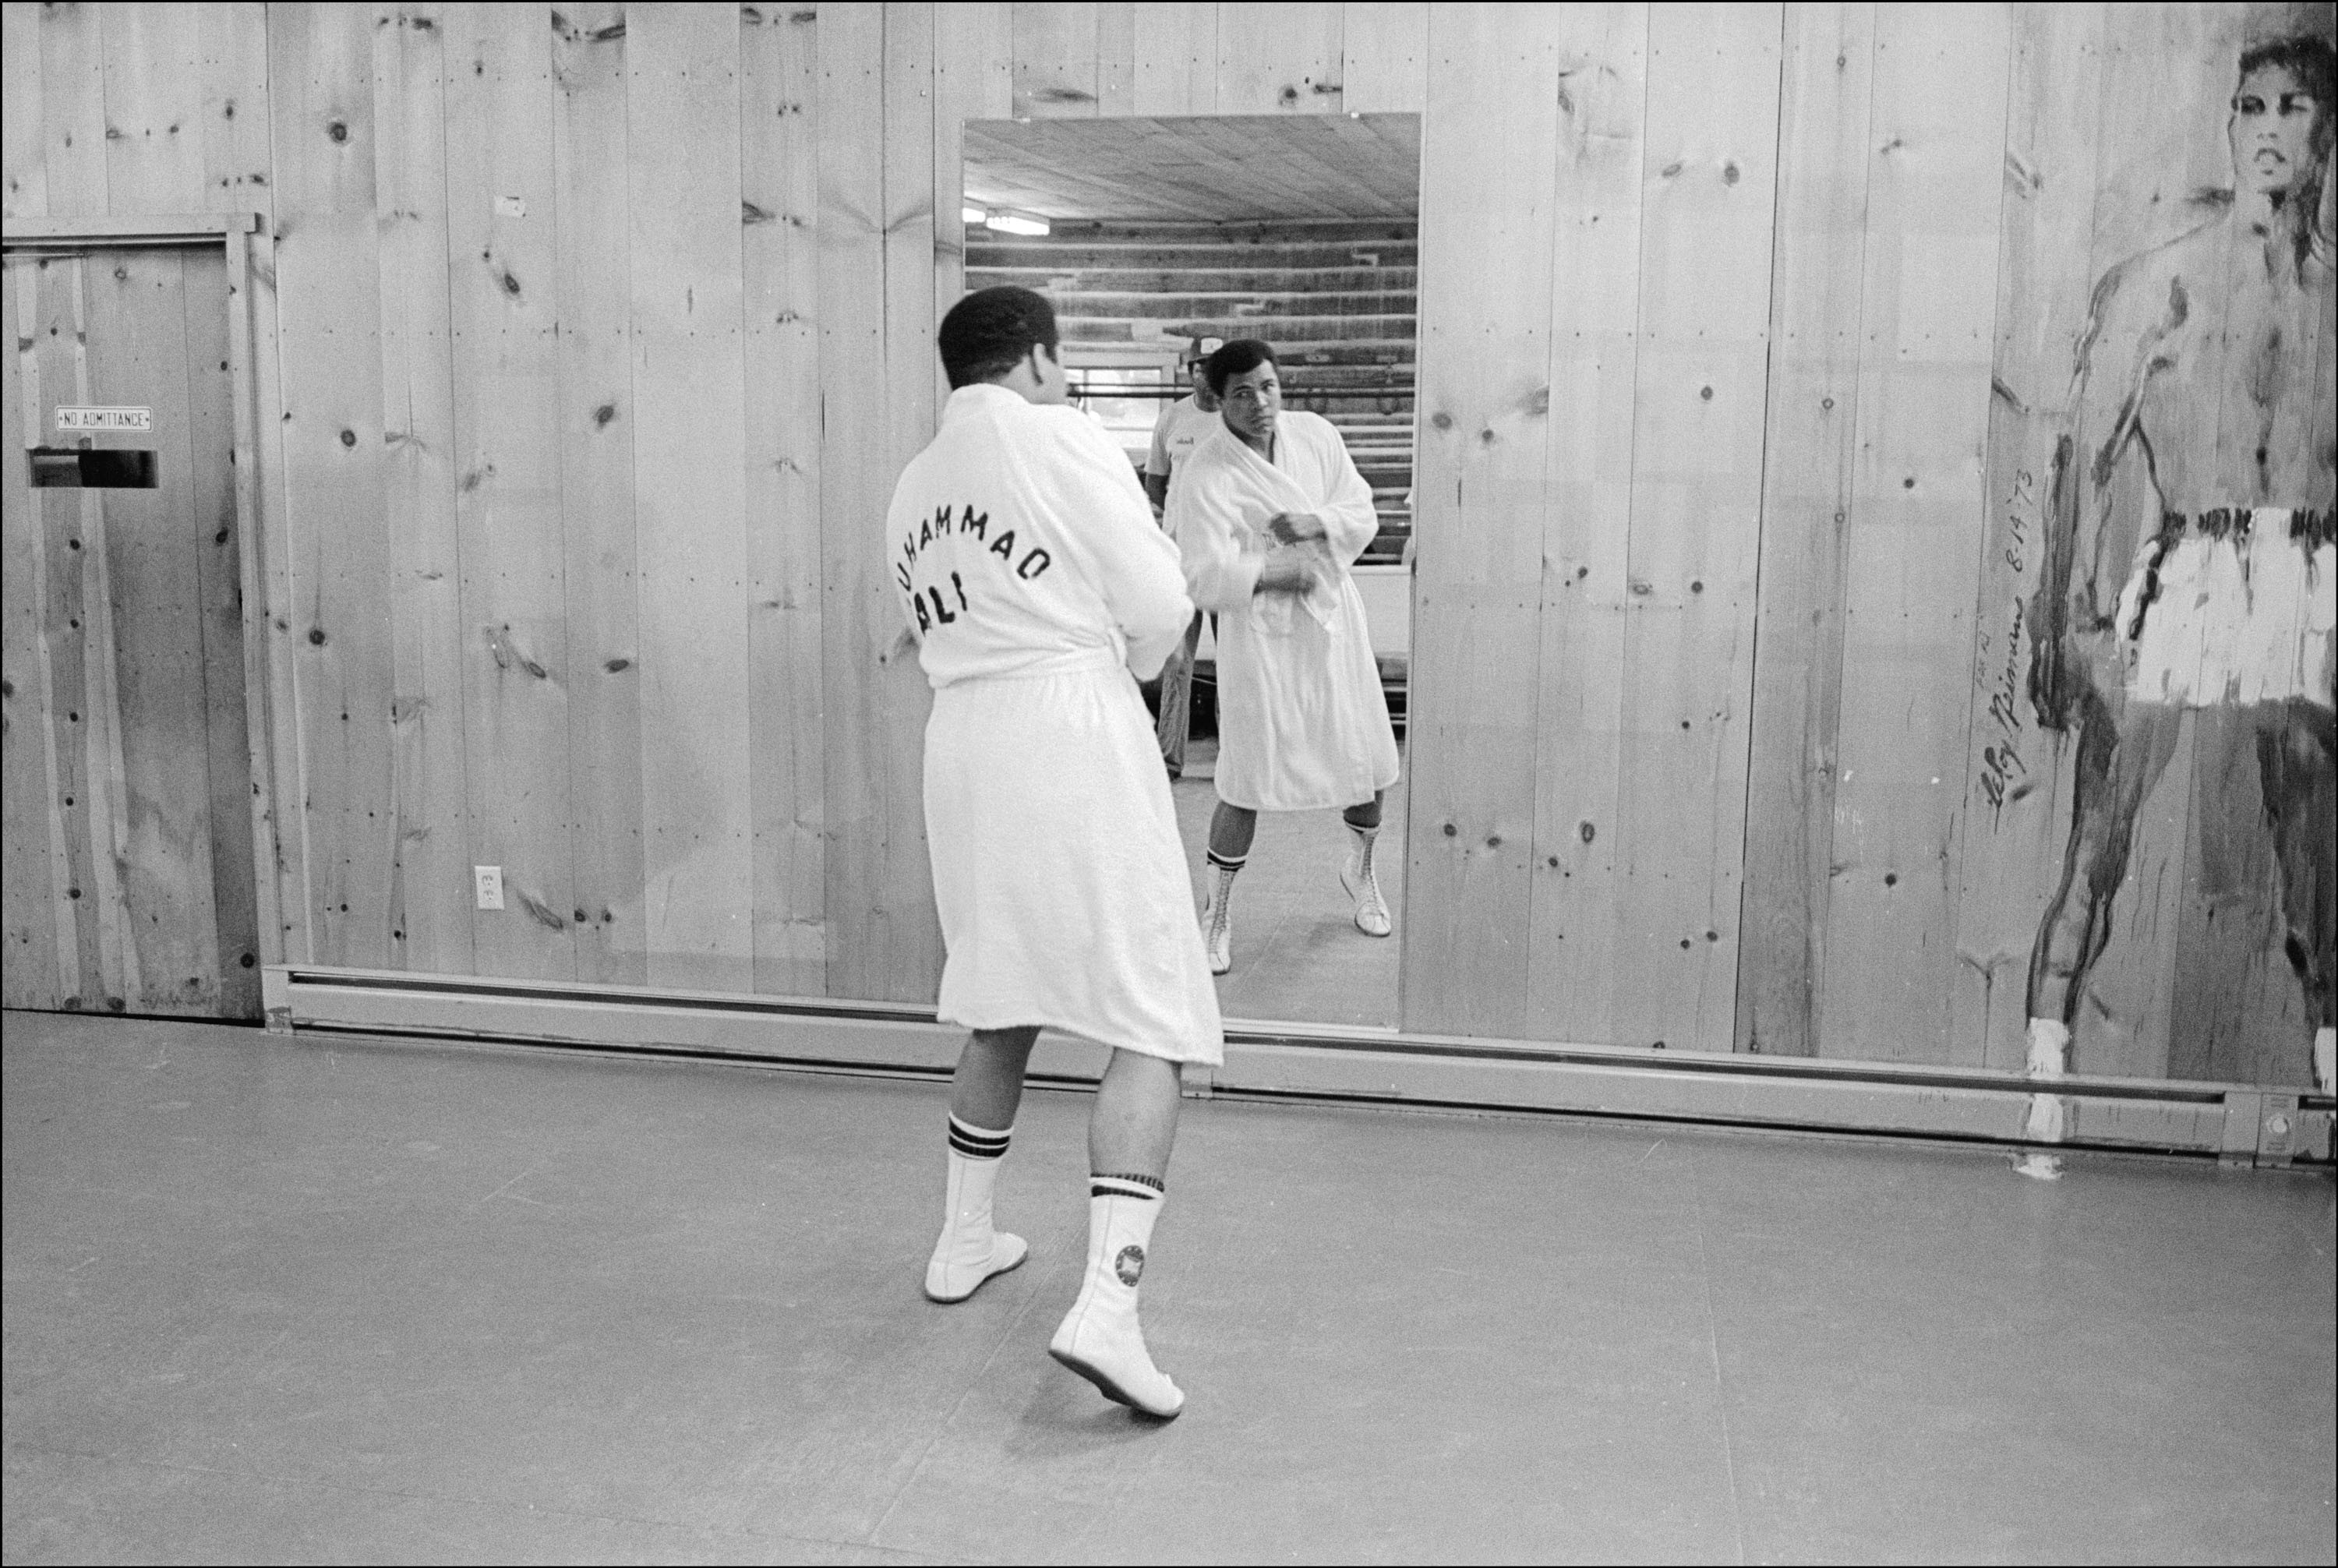 September 22, 1977 - Deer Park, Pennsylvania, United States: Muhammad Ali shadow boxes at his Deer Lake, PA, training camp. Ali went on to defeat Earnie Shavers in a fifteen round unanimous decision on September 29 and retained the Ring, WBC & WBA World Heavyweight titles., Image: 288876178, License: Rights-managed, Restrictions: , Model Release: no, Credit line: Profimedia, Polaris